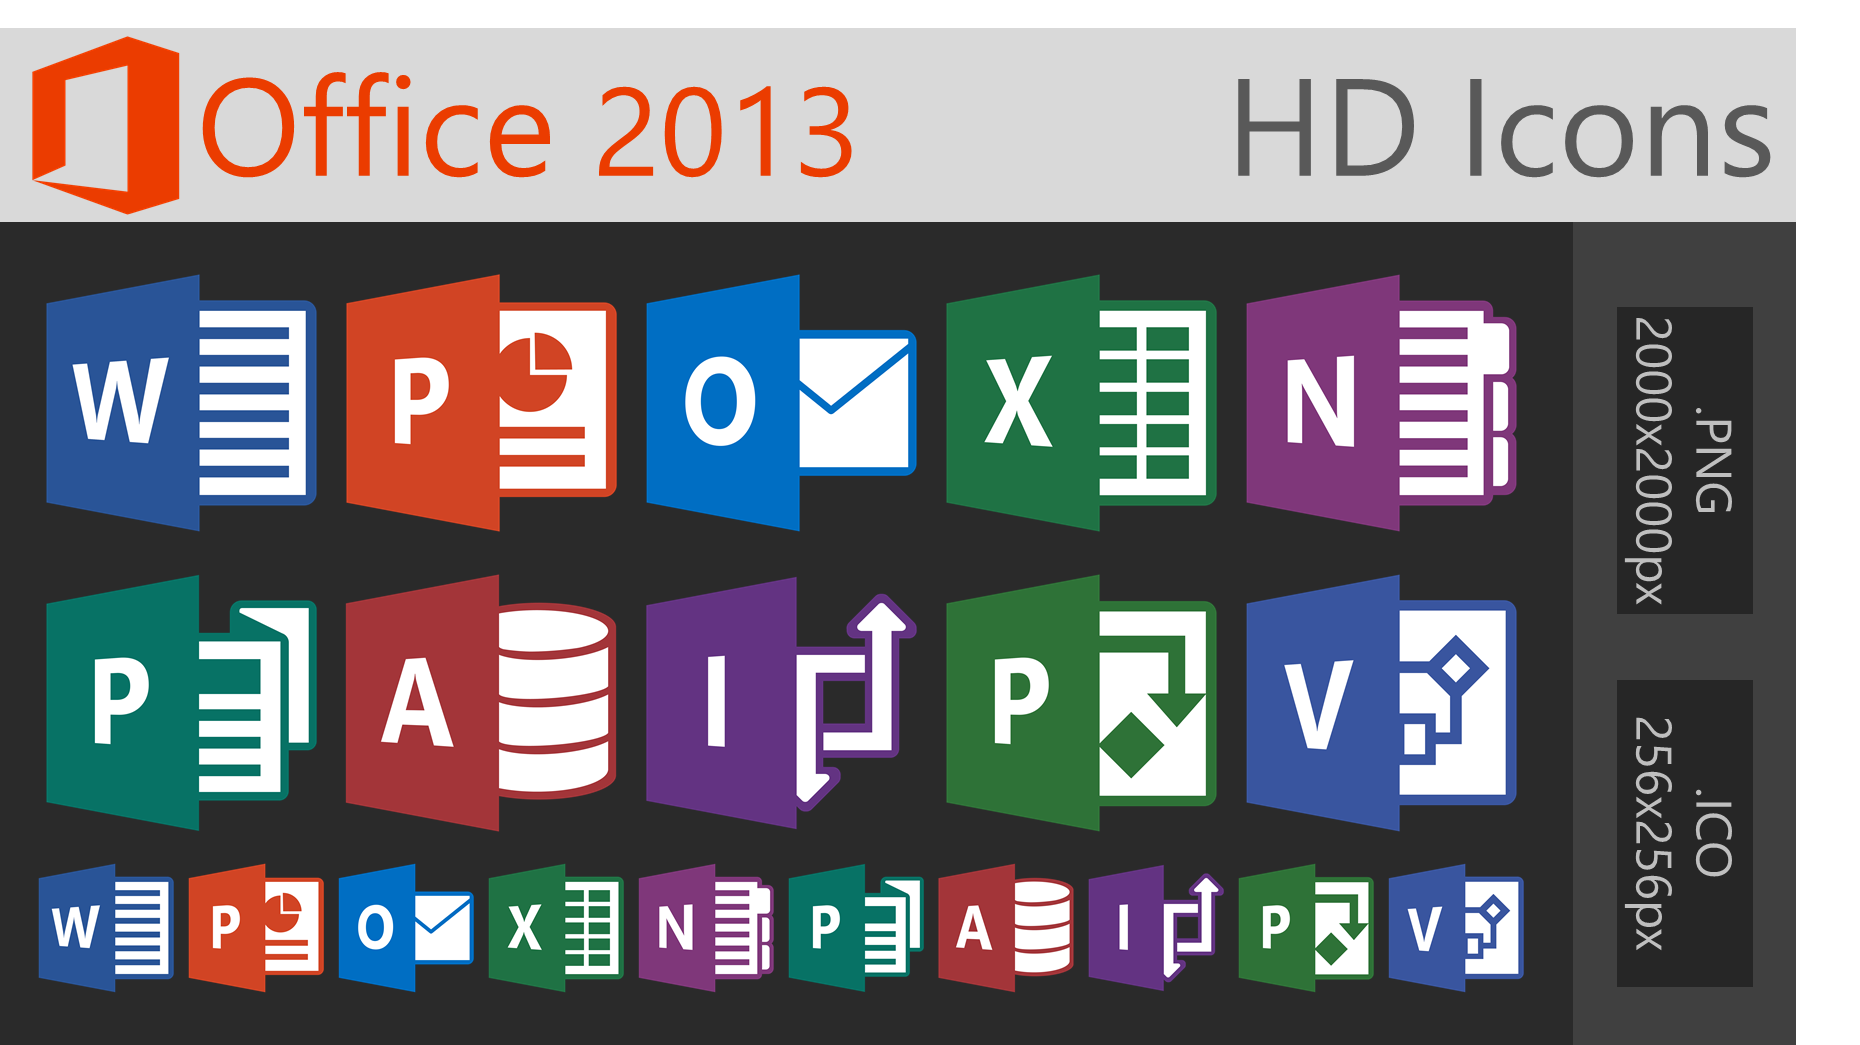 office 2013 hd icons large by dakirby309 watch customization icons ...